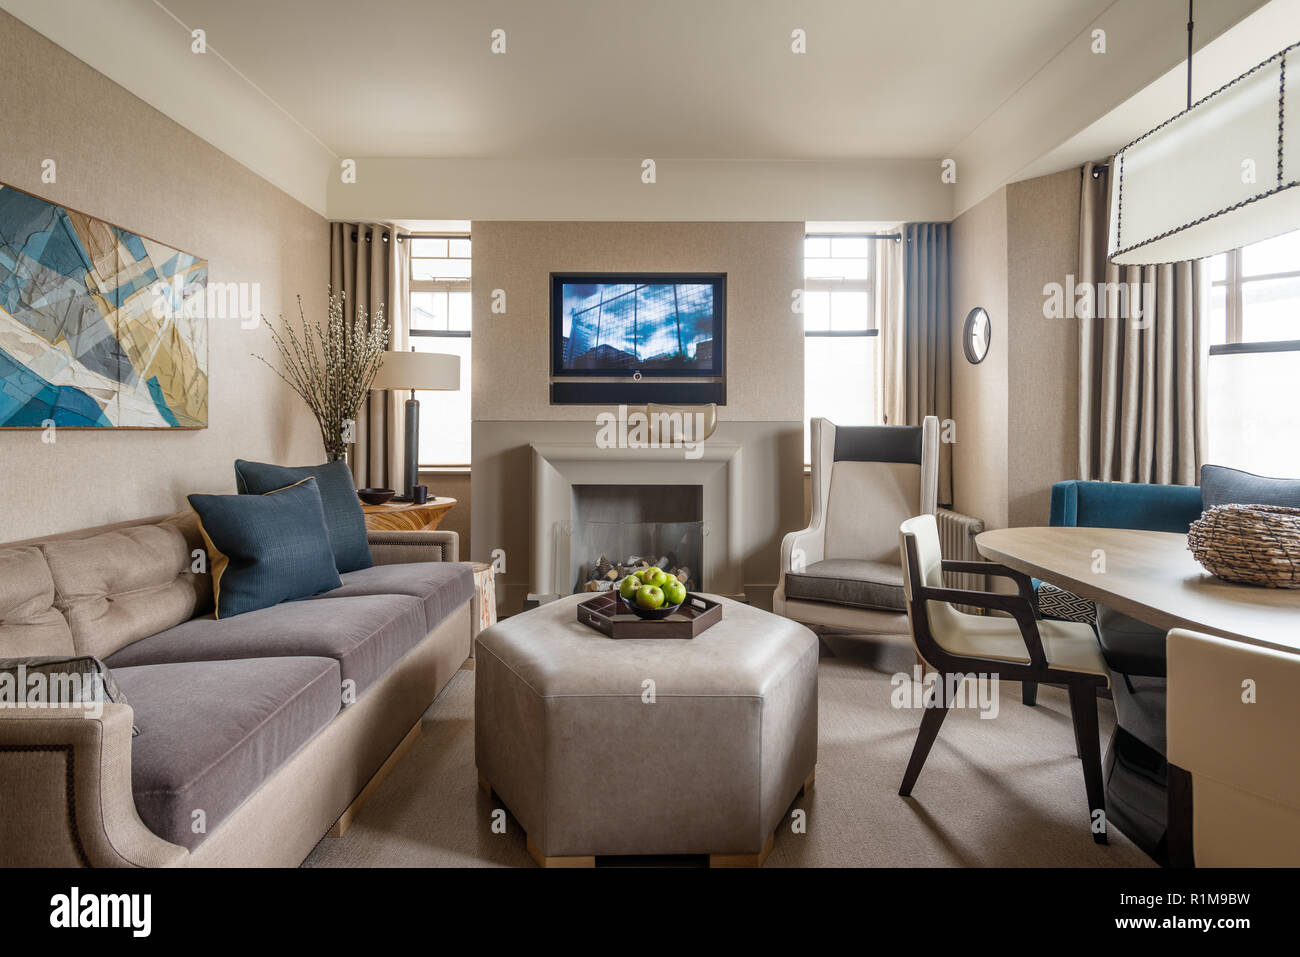 Beige Carpet Living Room High Resolution Stock Photography And Images Alamy